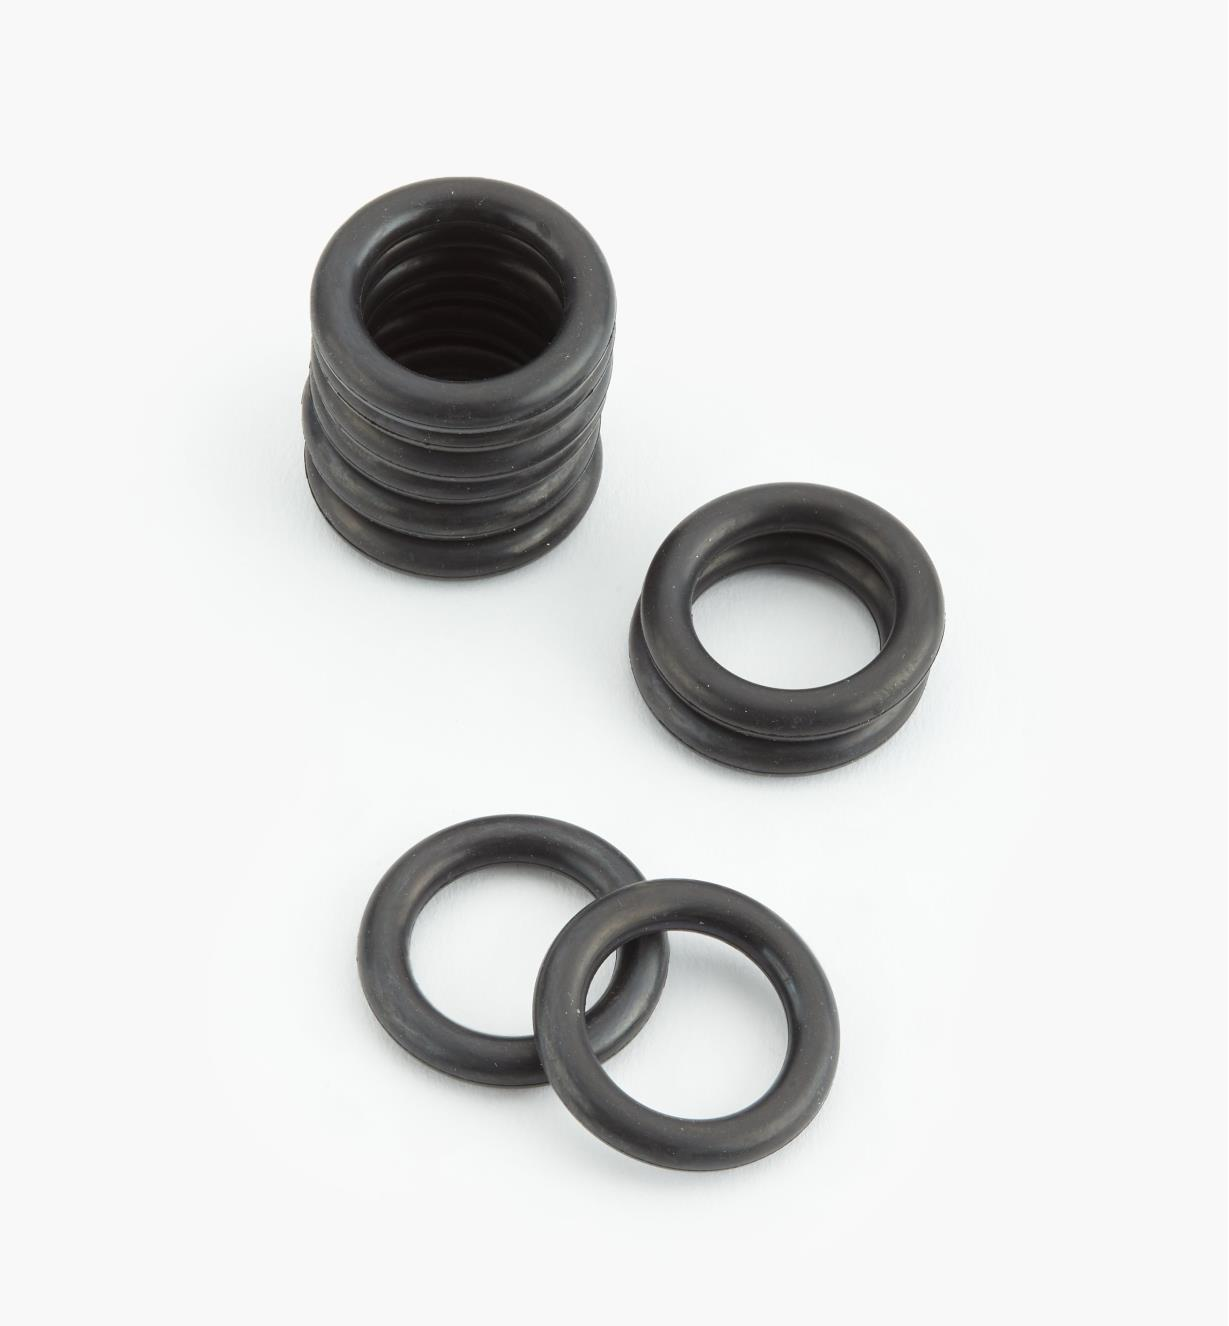 AB109 - O-Ring Washers, pkg. of 10